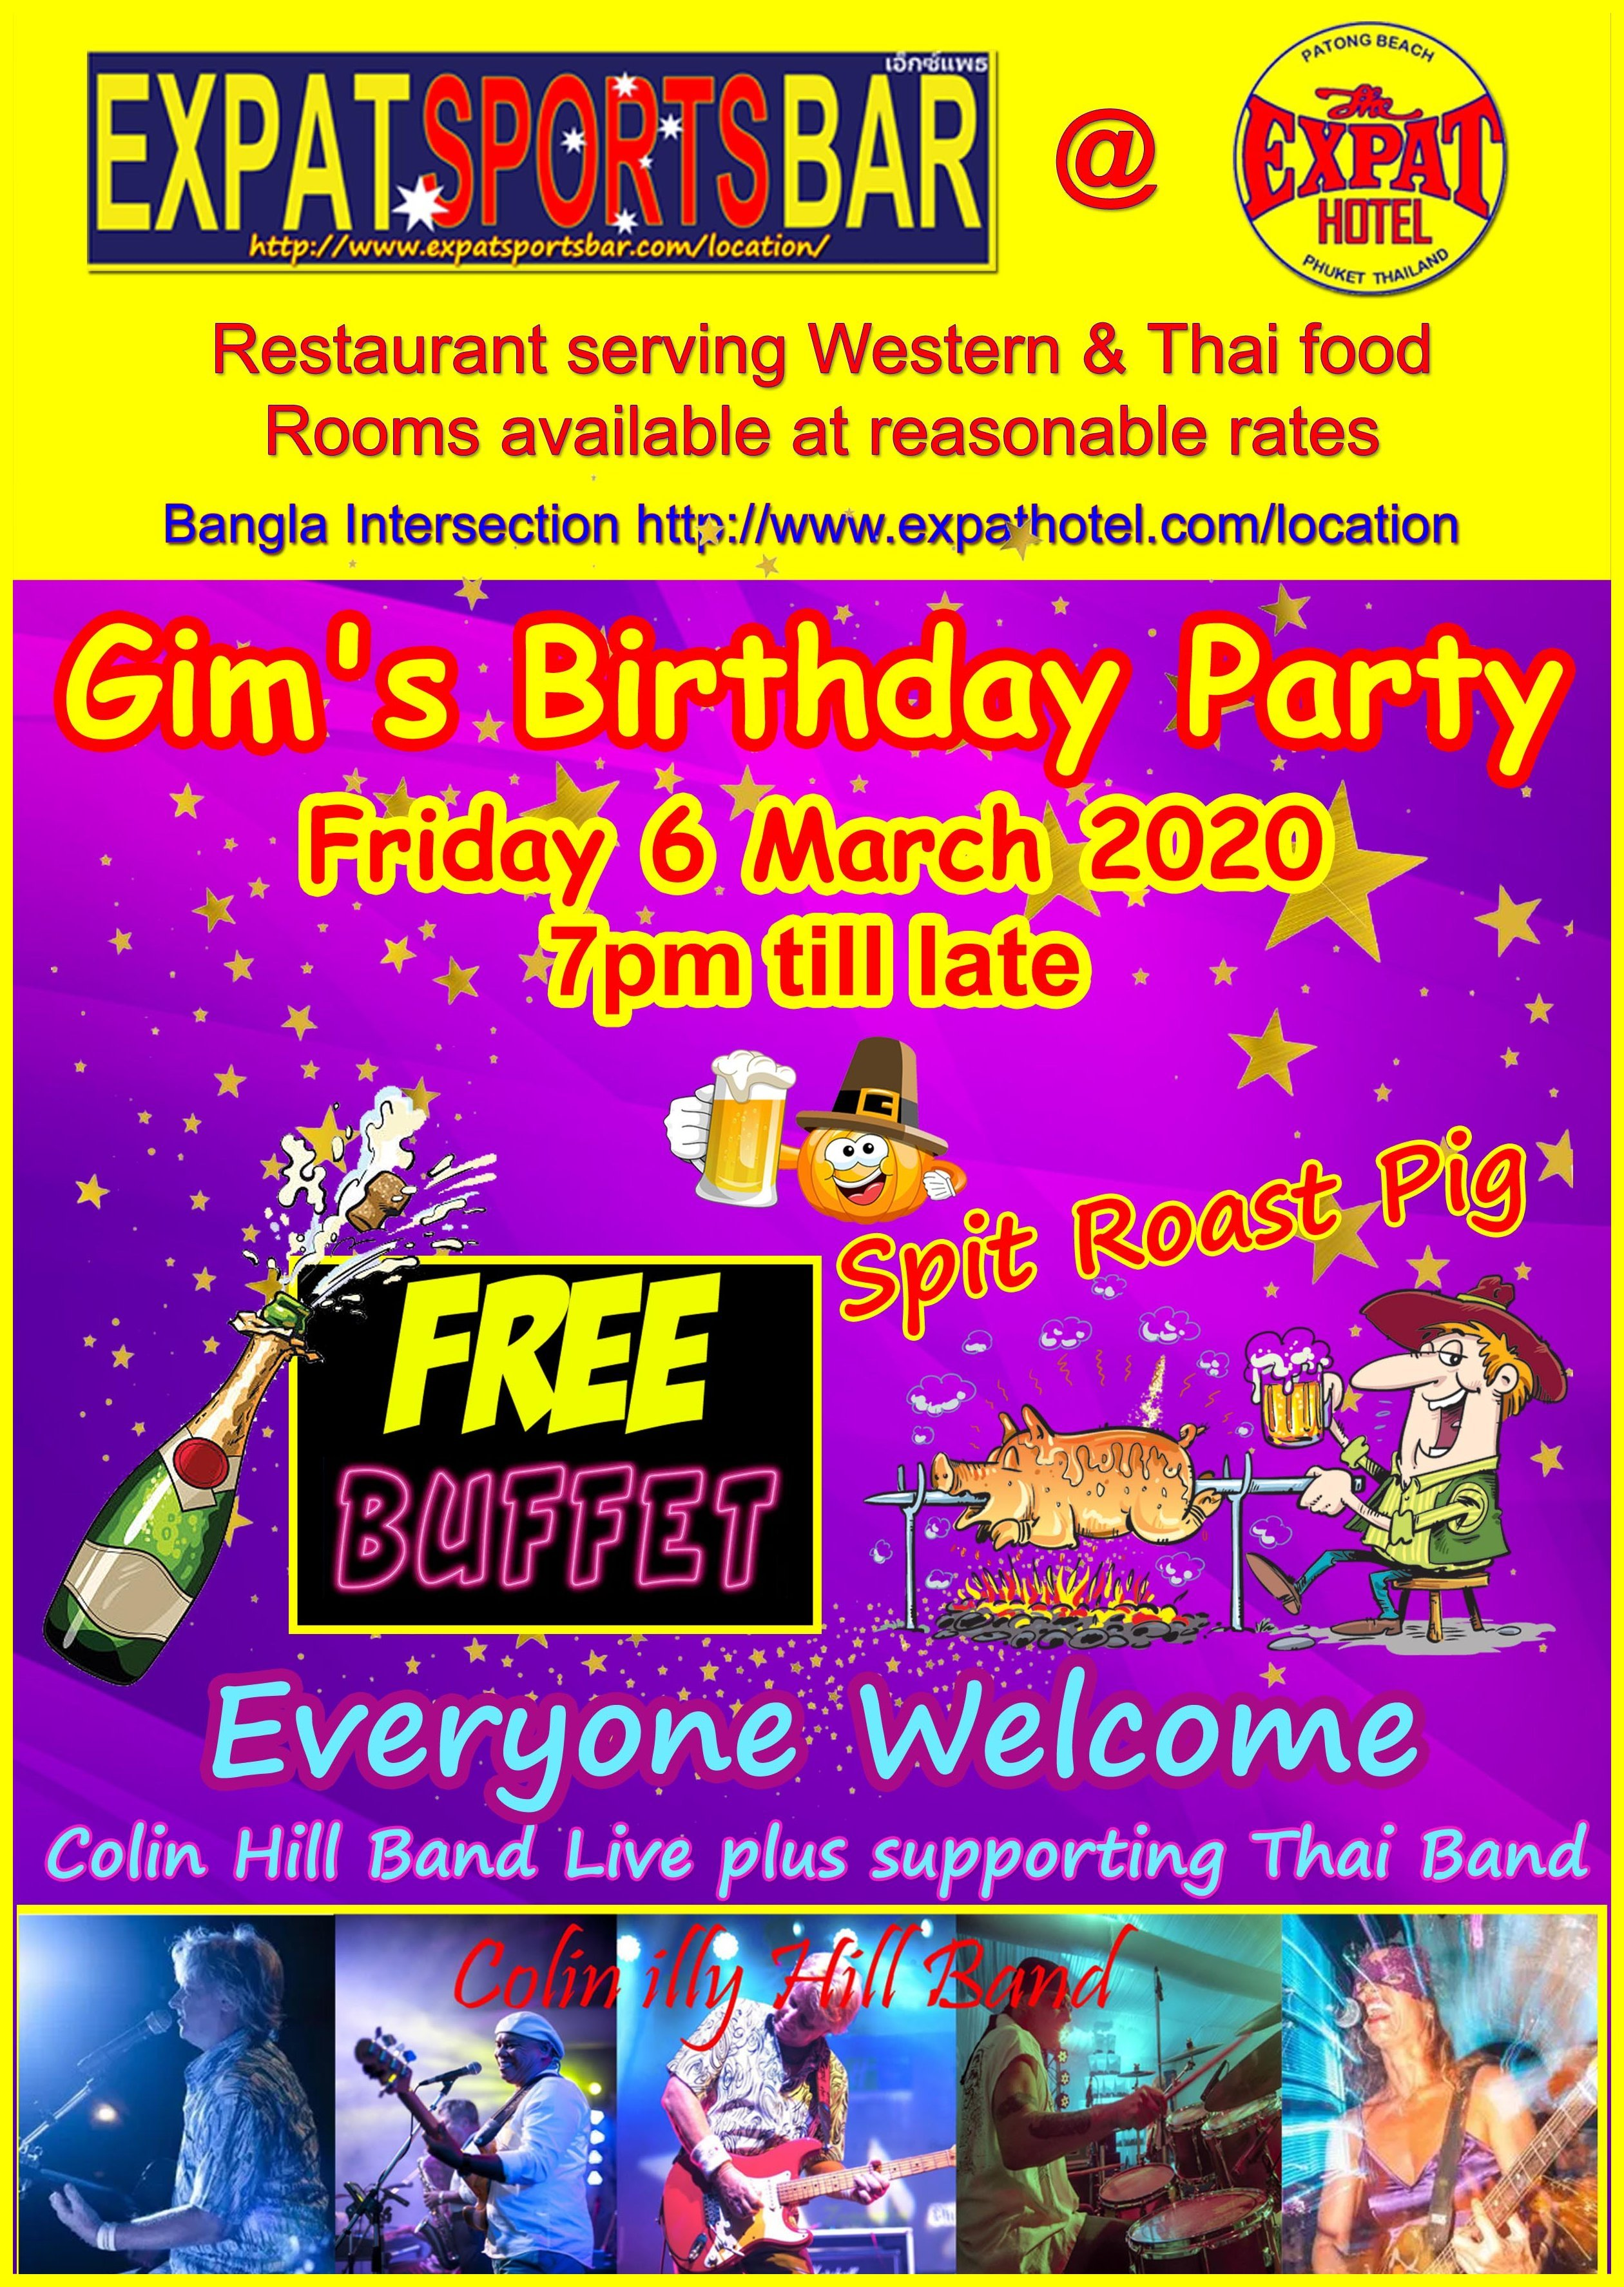 Expat - Gim's Birthday Party